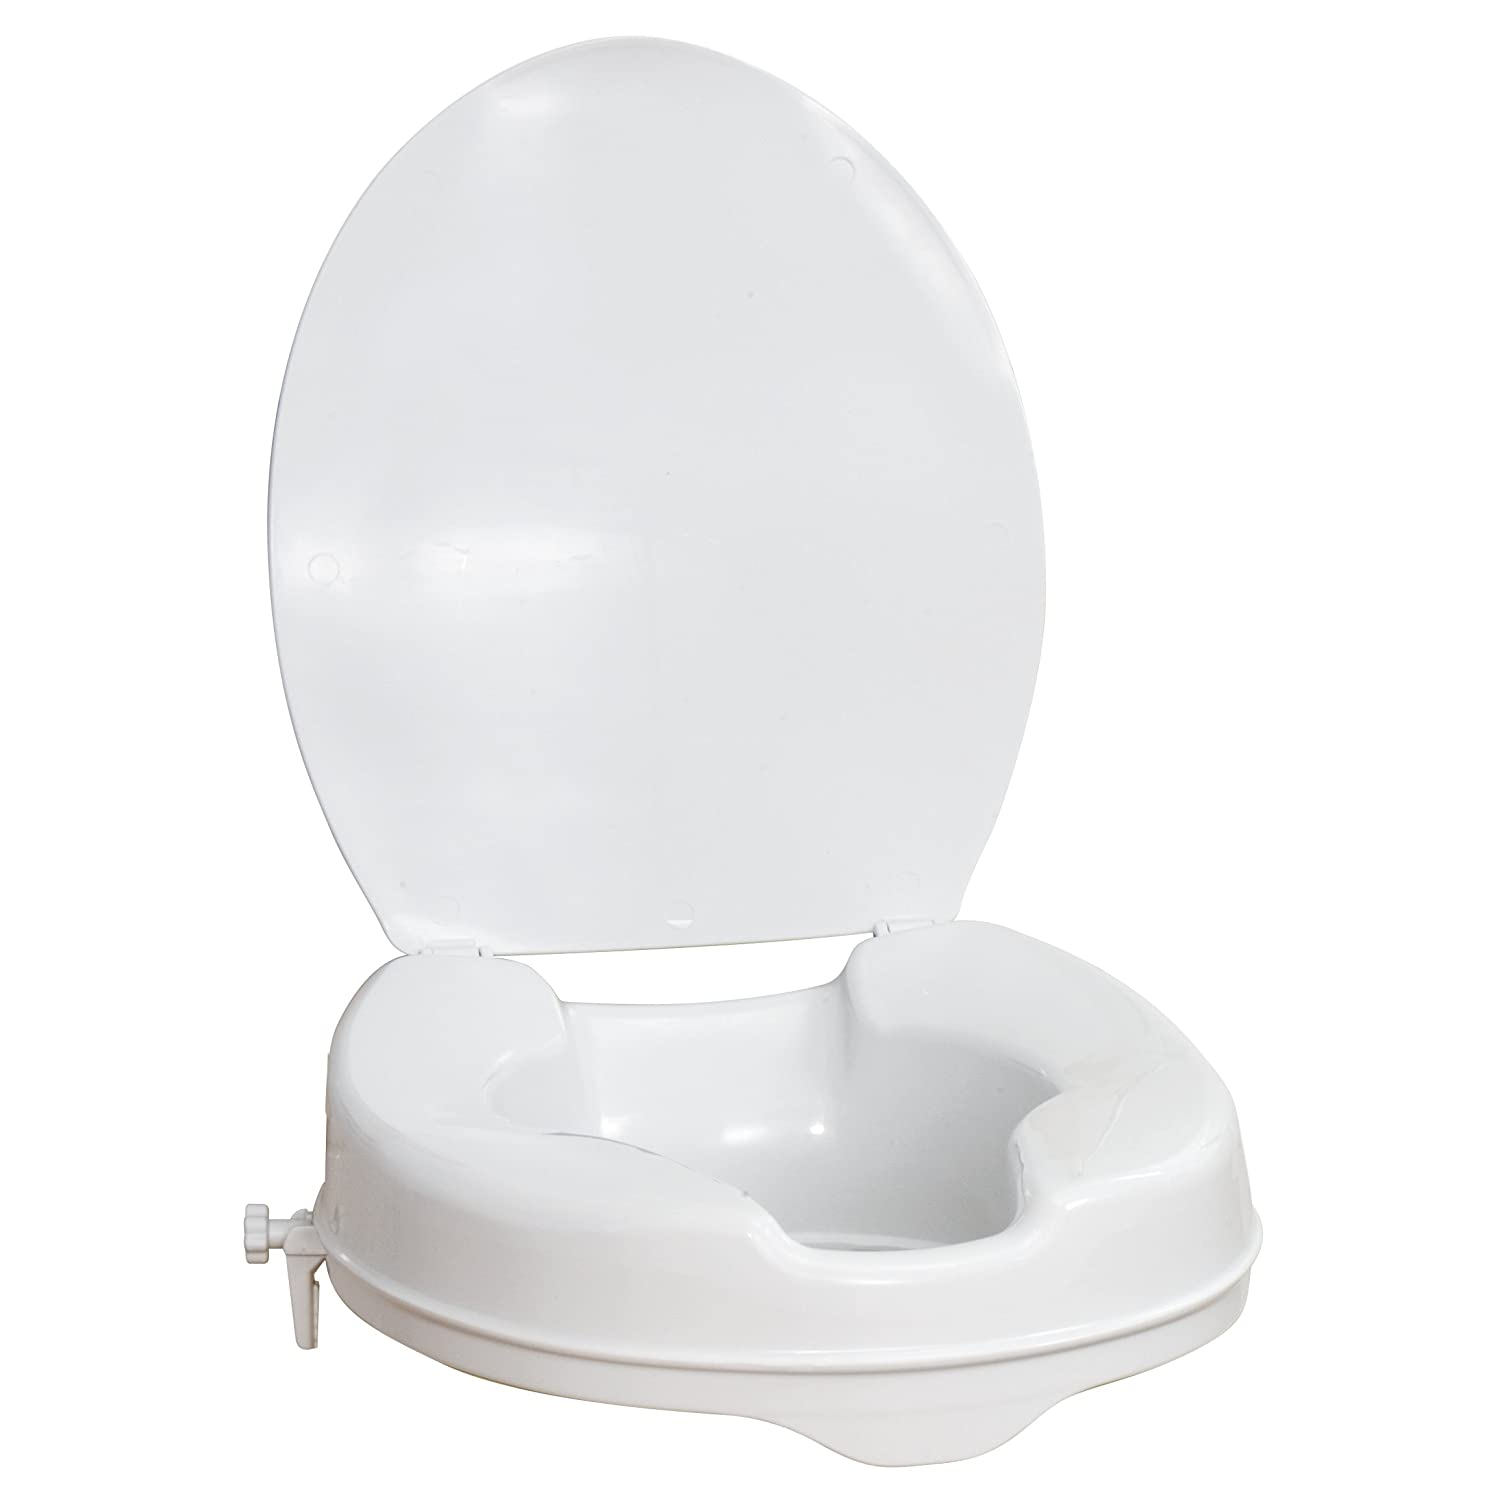 Aquasense Raised Toilet Seat With Lid White 2 Inches